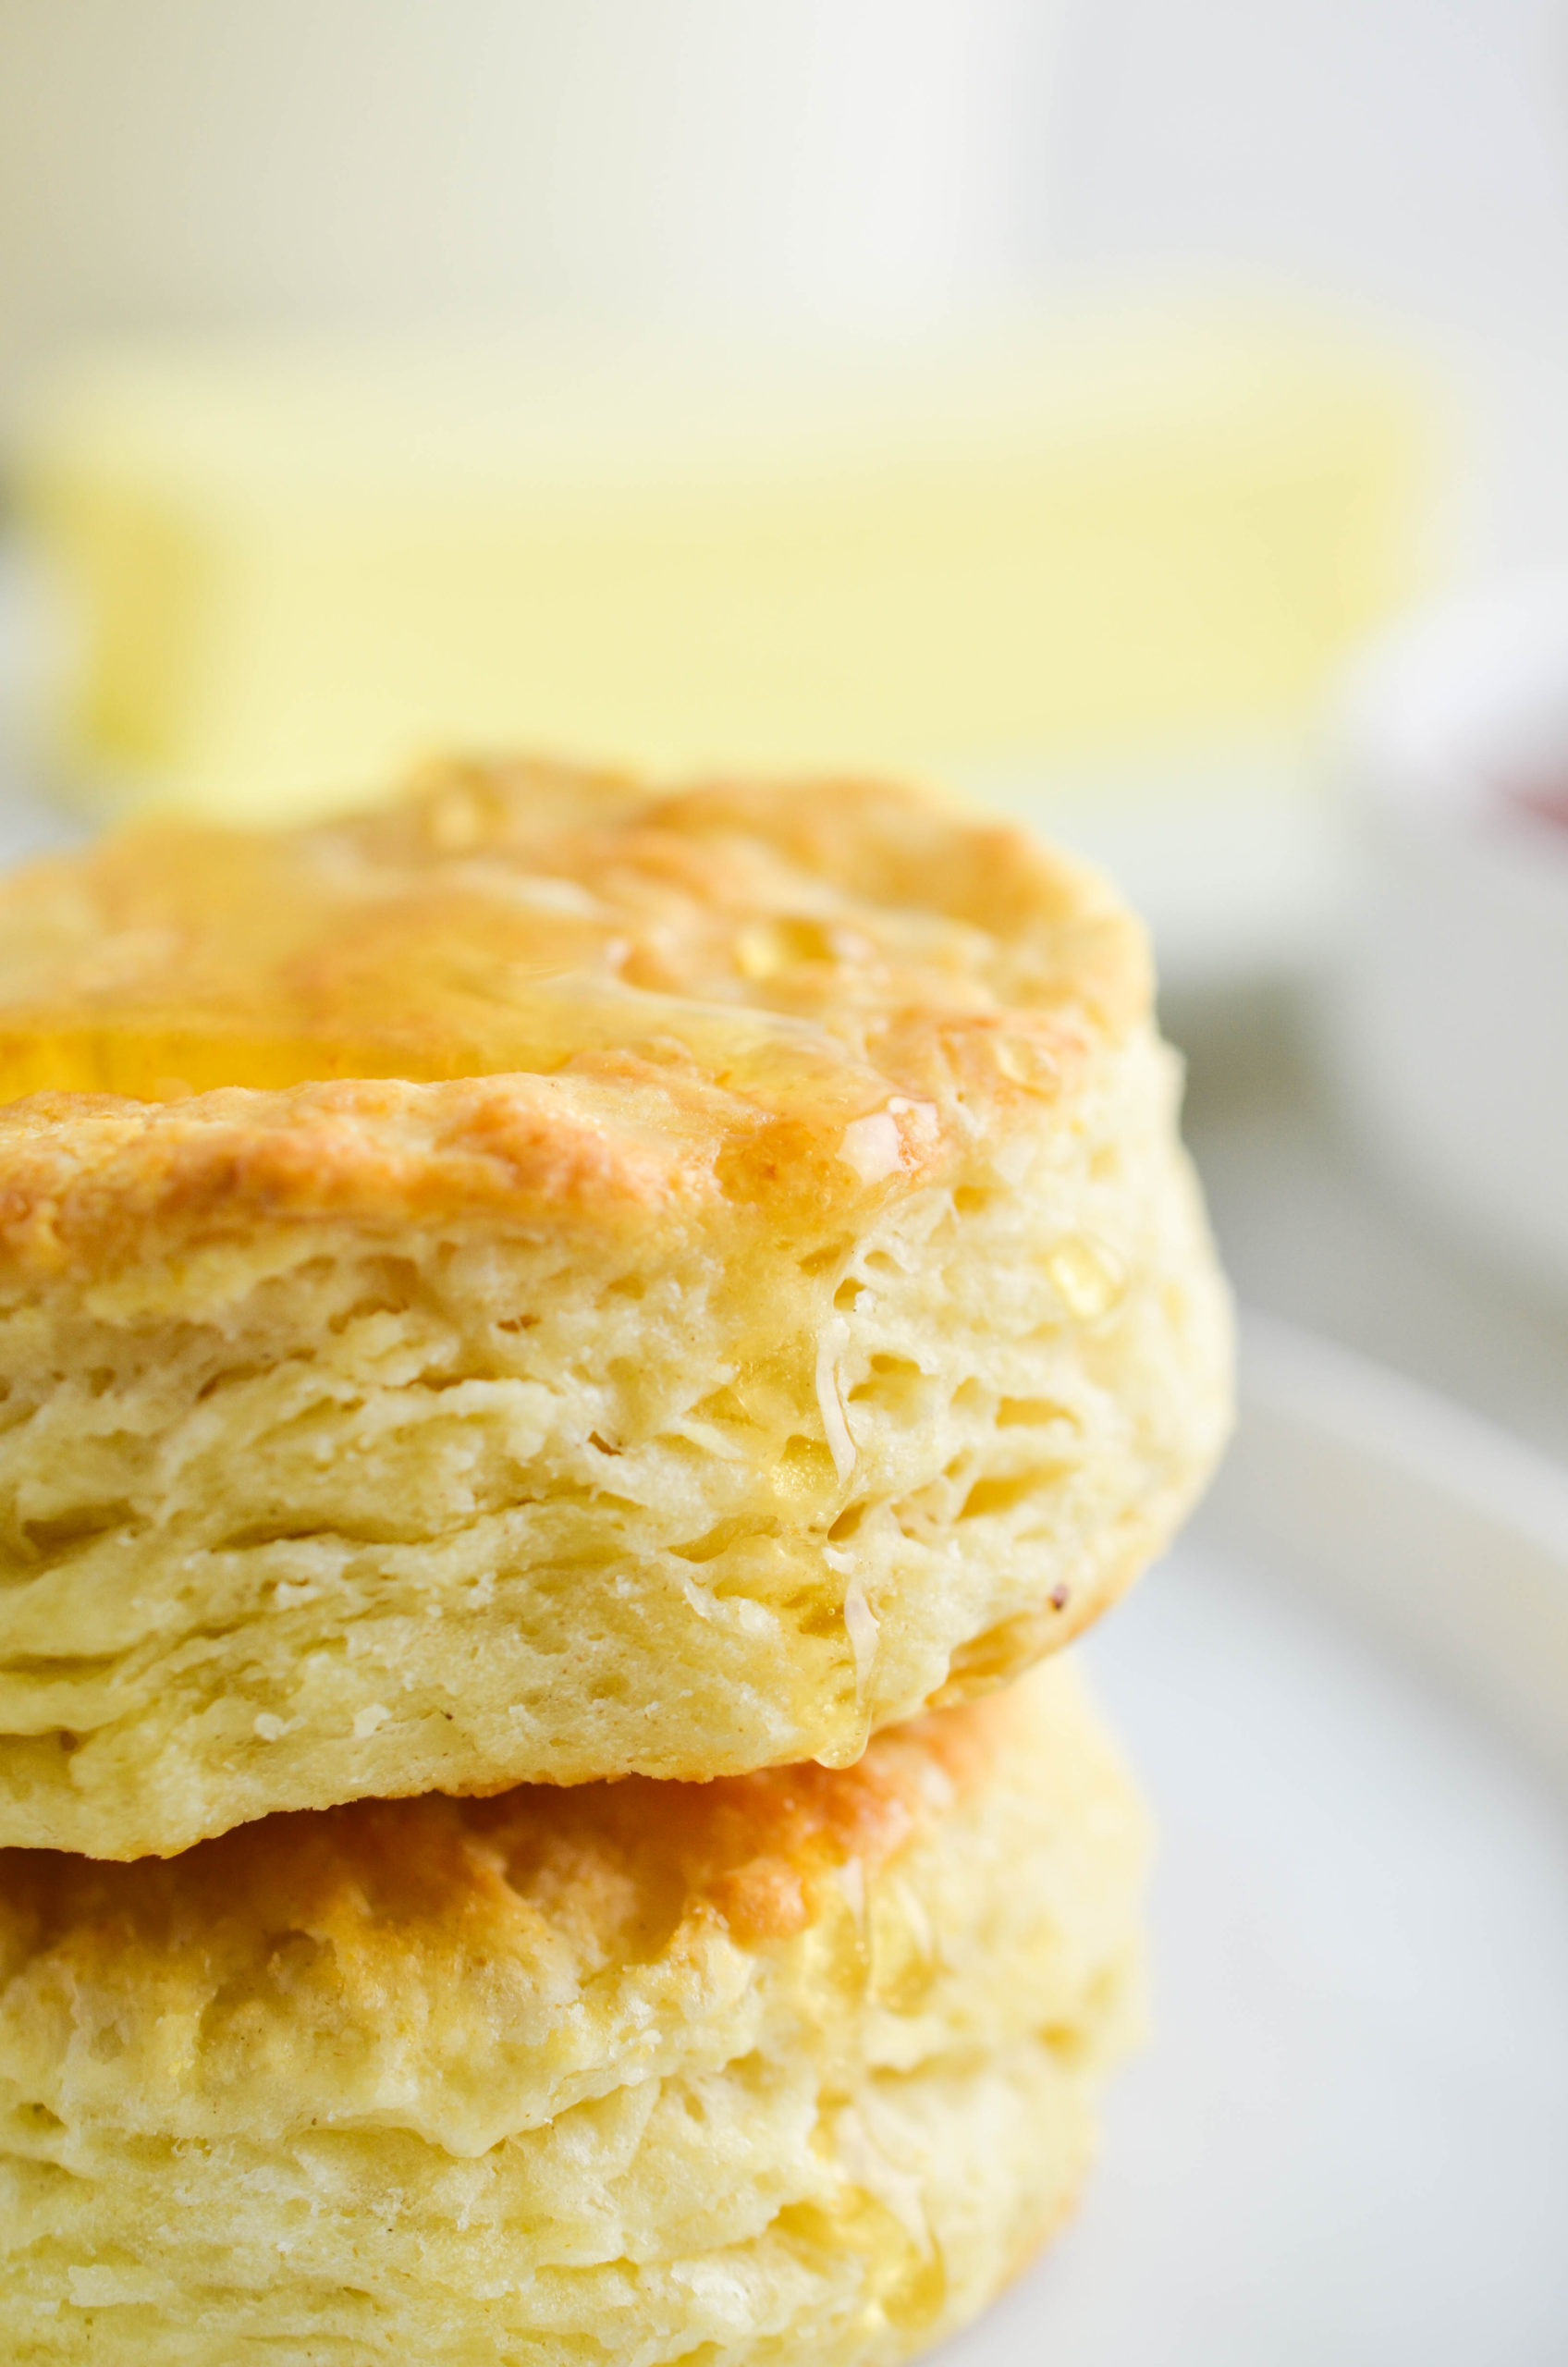 Up close photo of biscuit with honey drizzle.